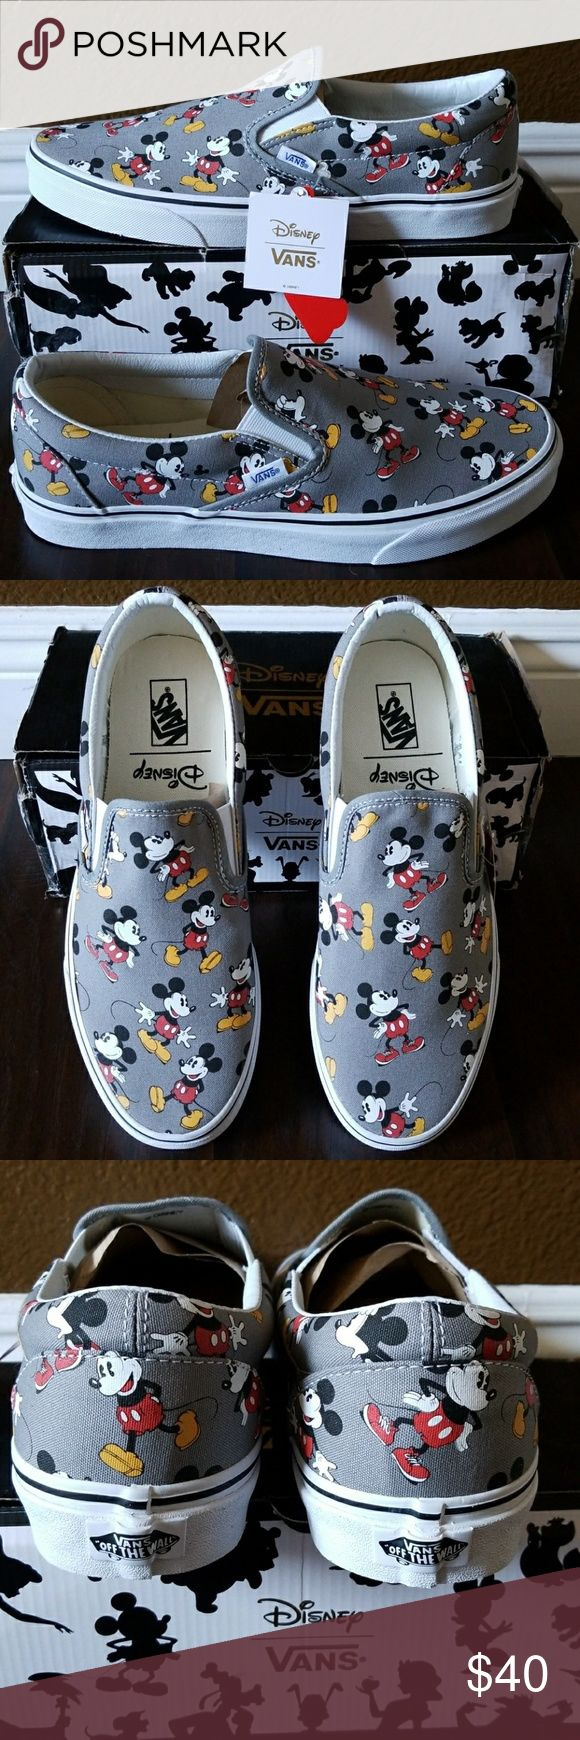 Vans Classic Vans Classic Slip-On (Disney) Mickeymouse/Frstgy  Men's Size: 11.0 *New With Box (Box isn't in perfect condition, had to tape it to keep it together) Vans Shoes Sneakers